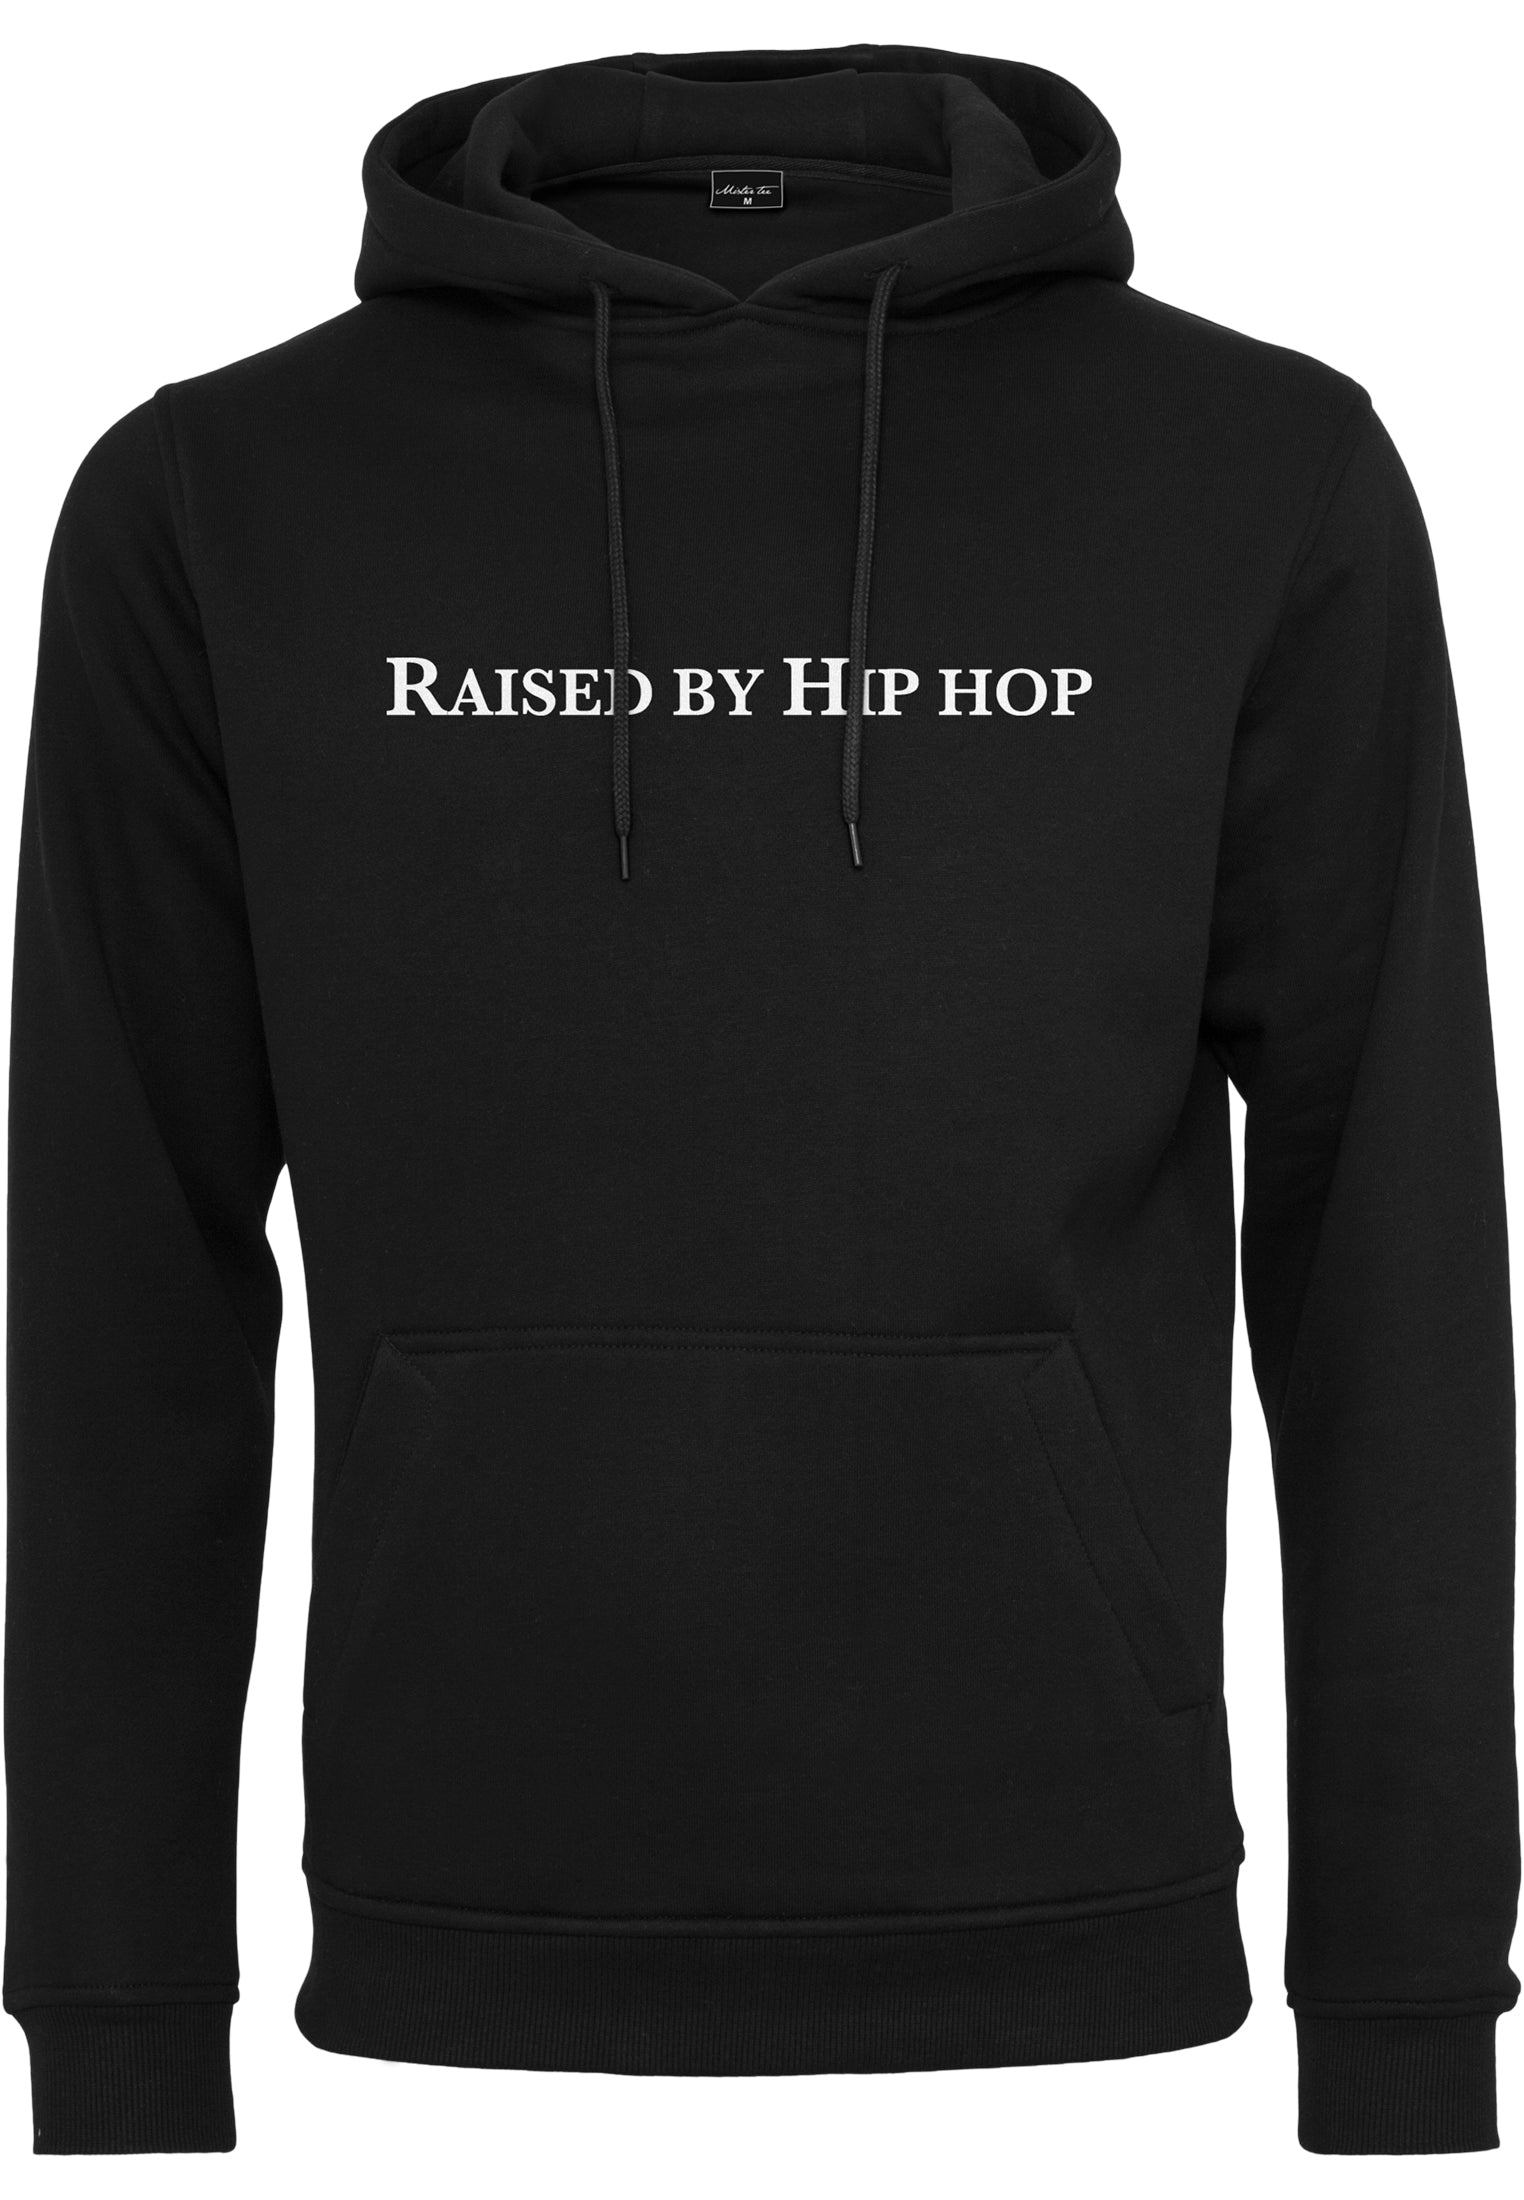 Raised by Hiphop EMB Hoody